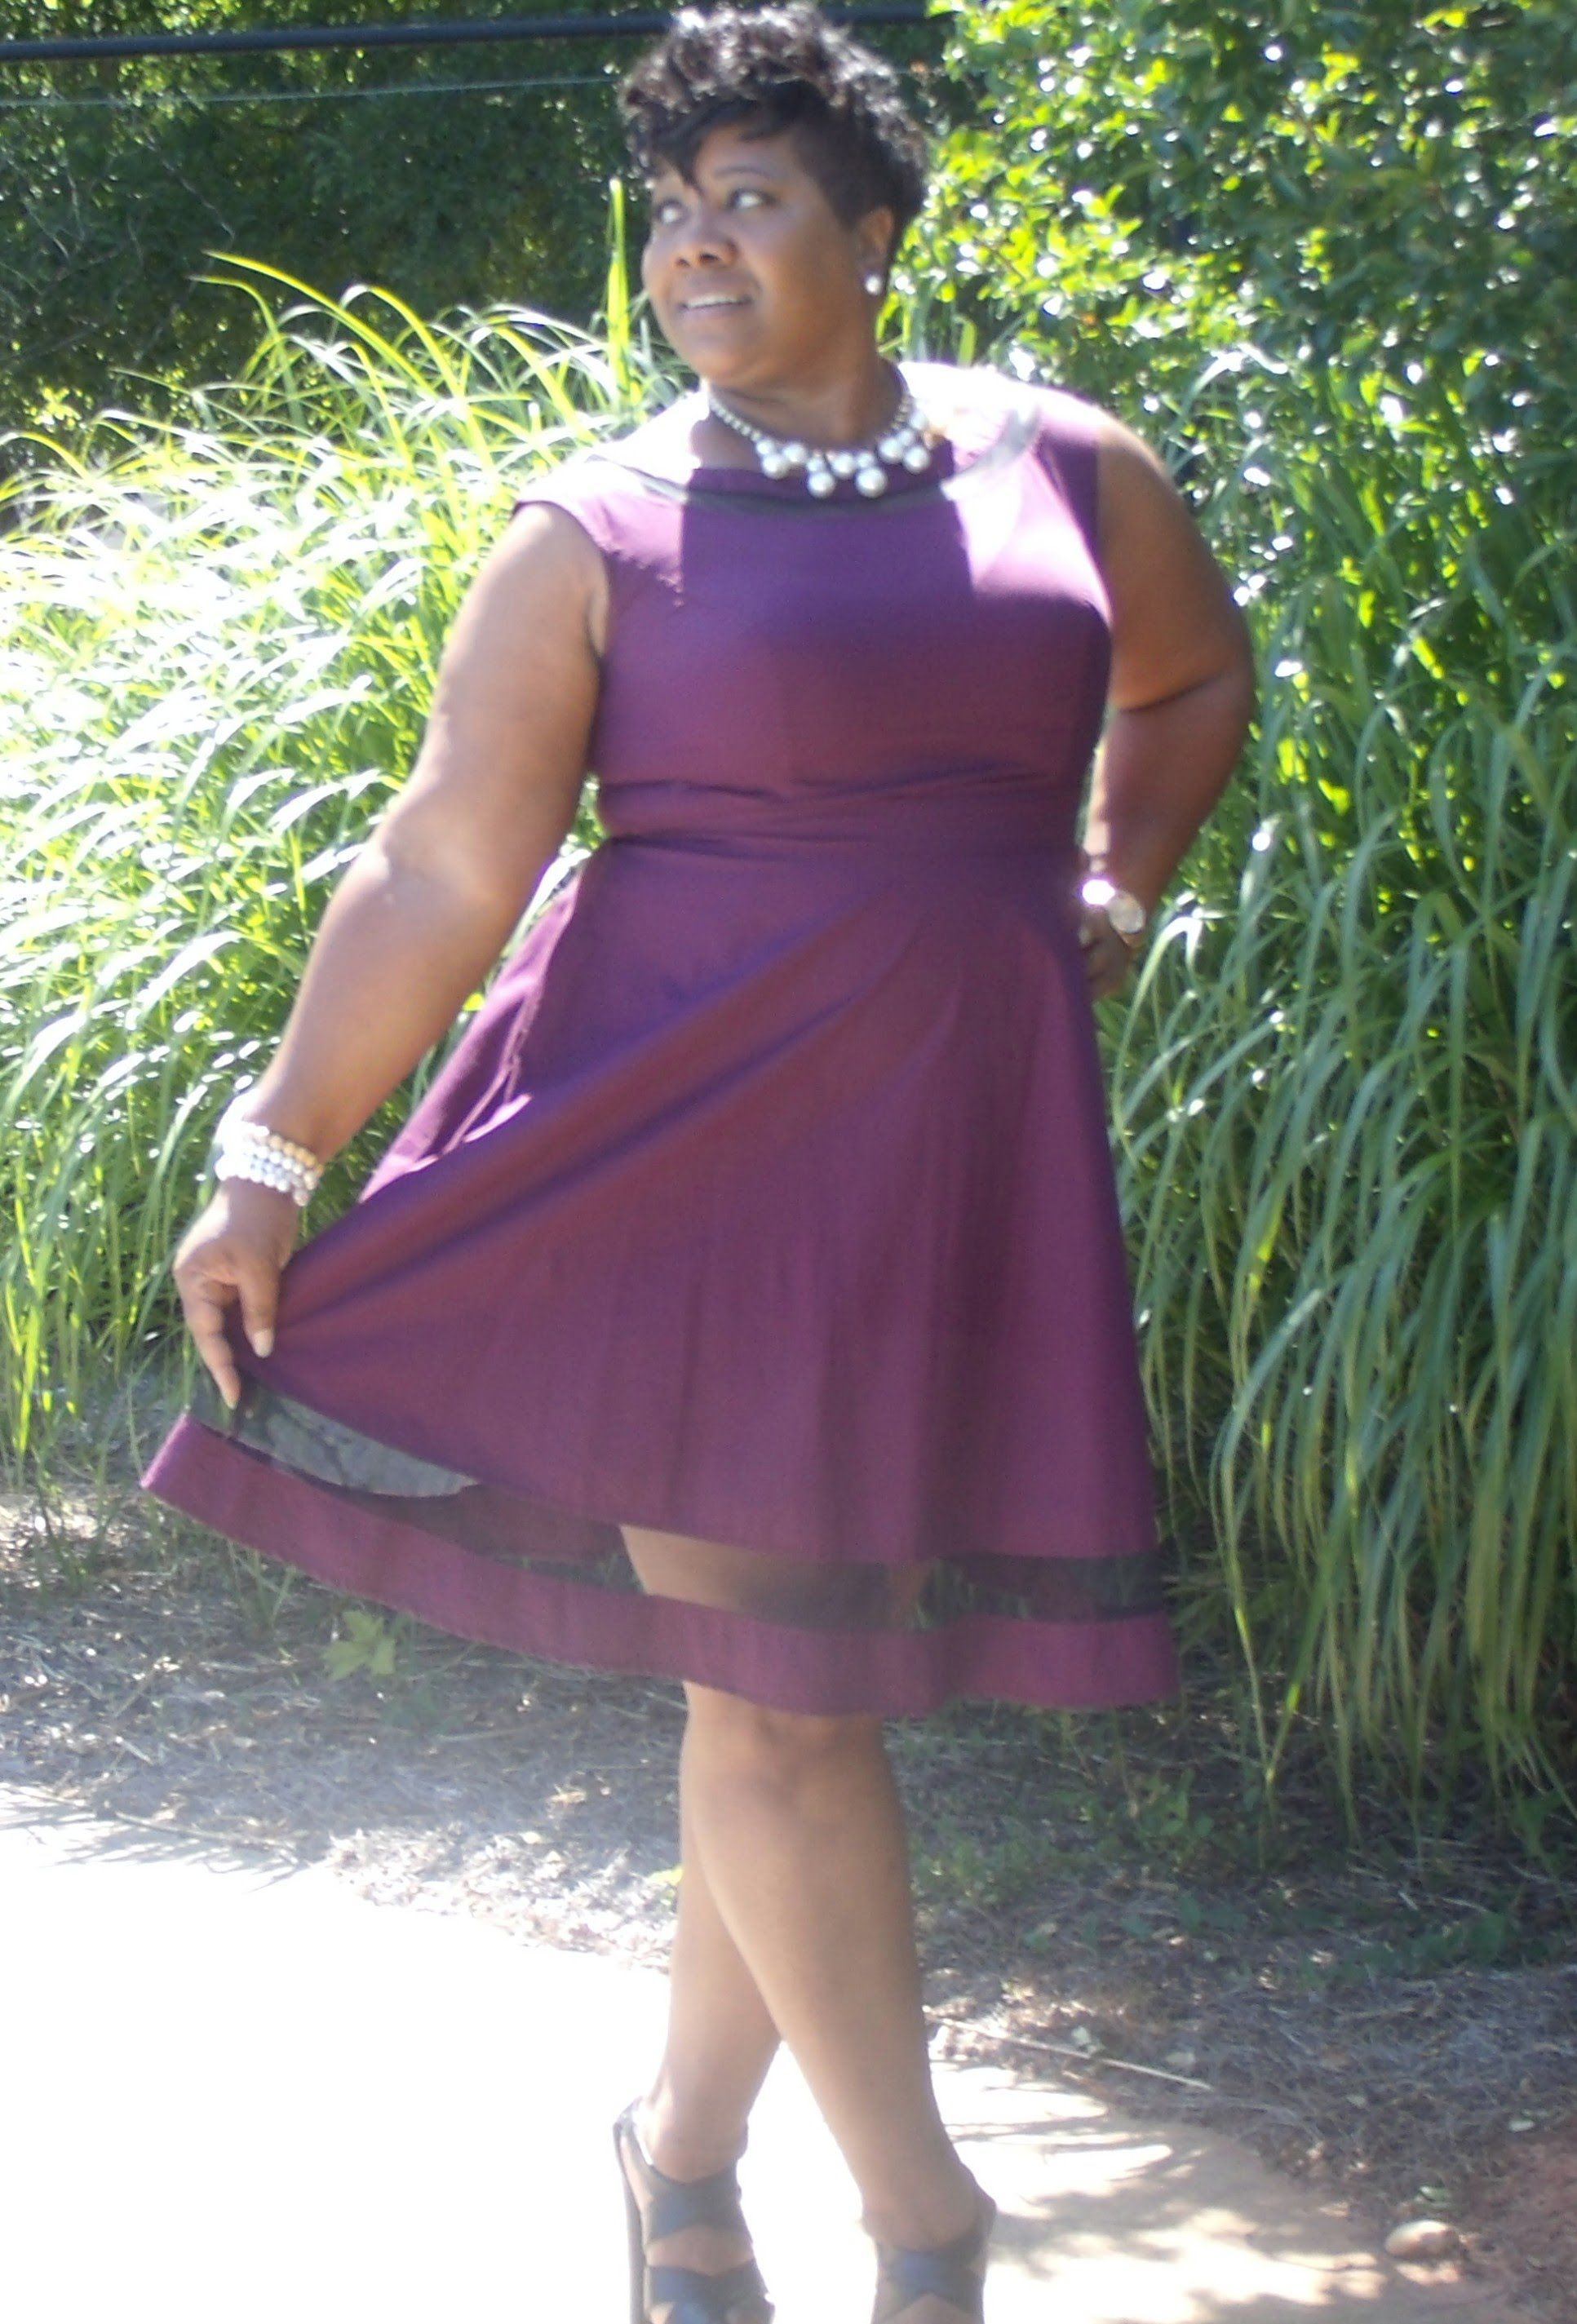 737e9b3d7b7 Urban Thick Online Plus Size Boutique and Consignment Store Current Inve.